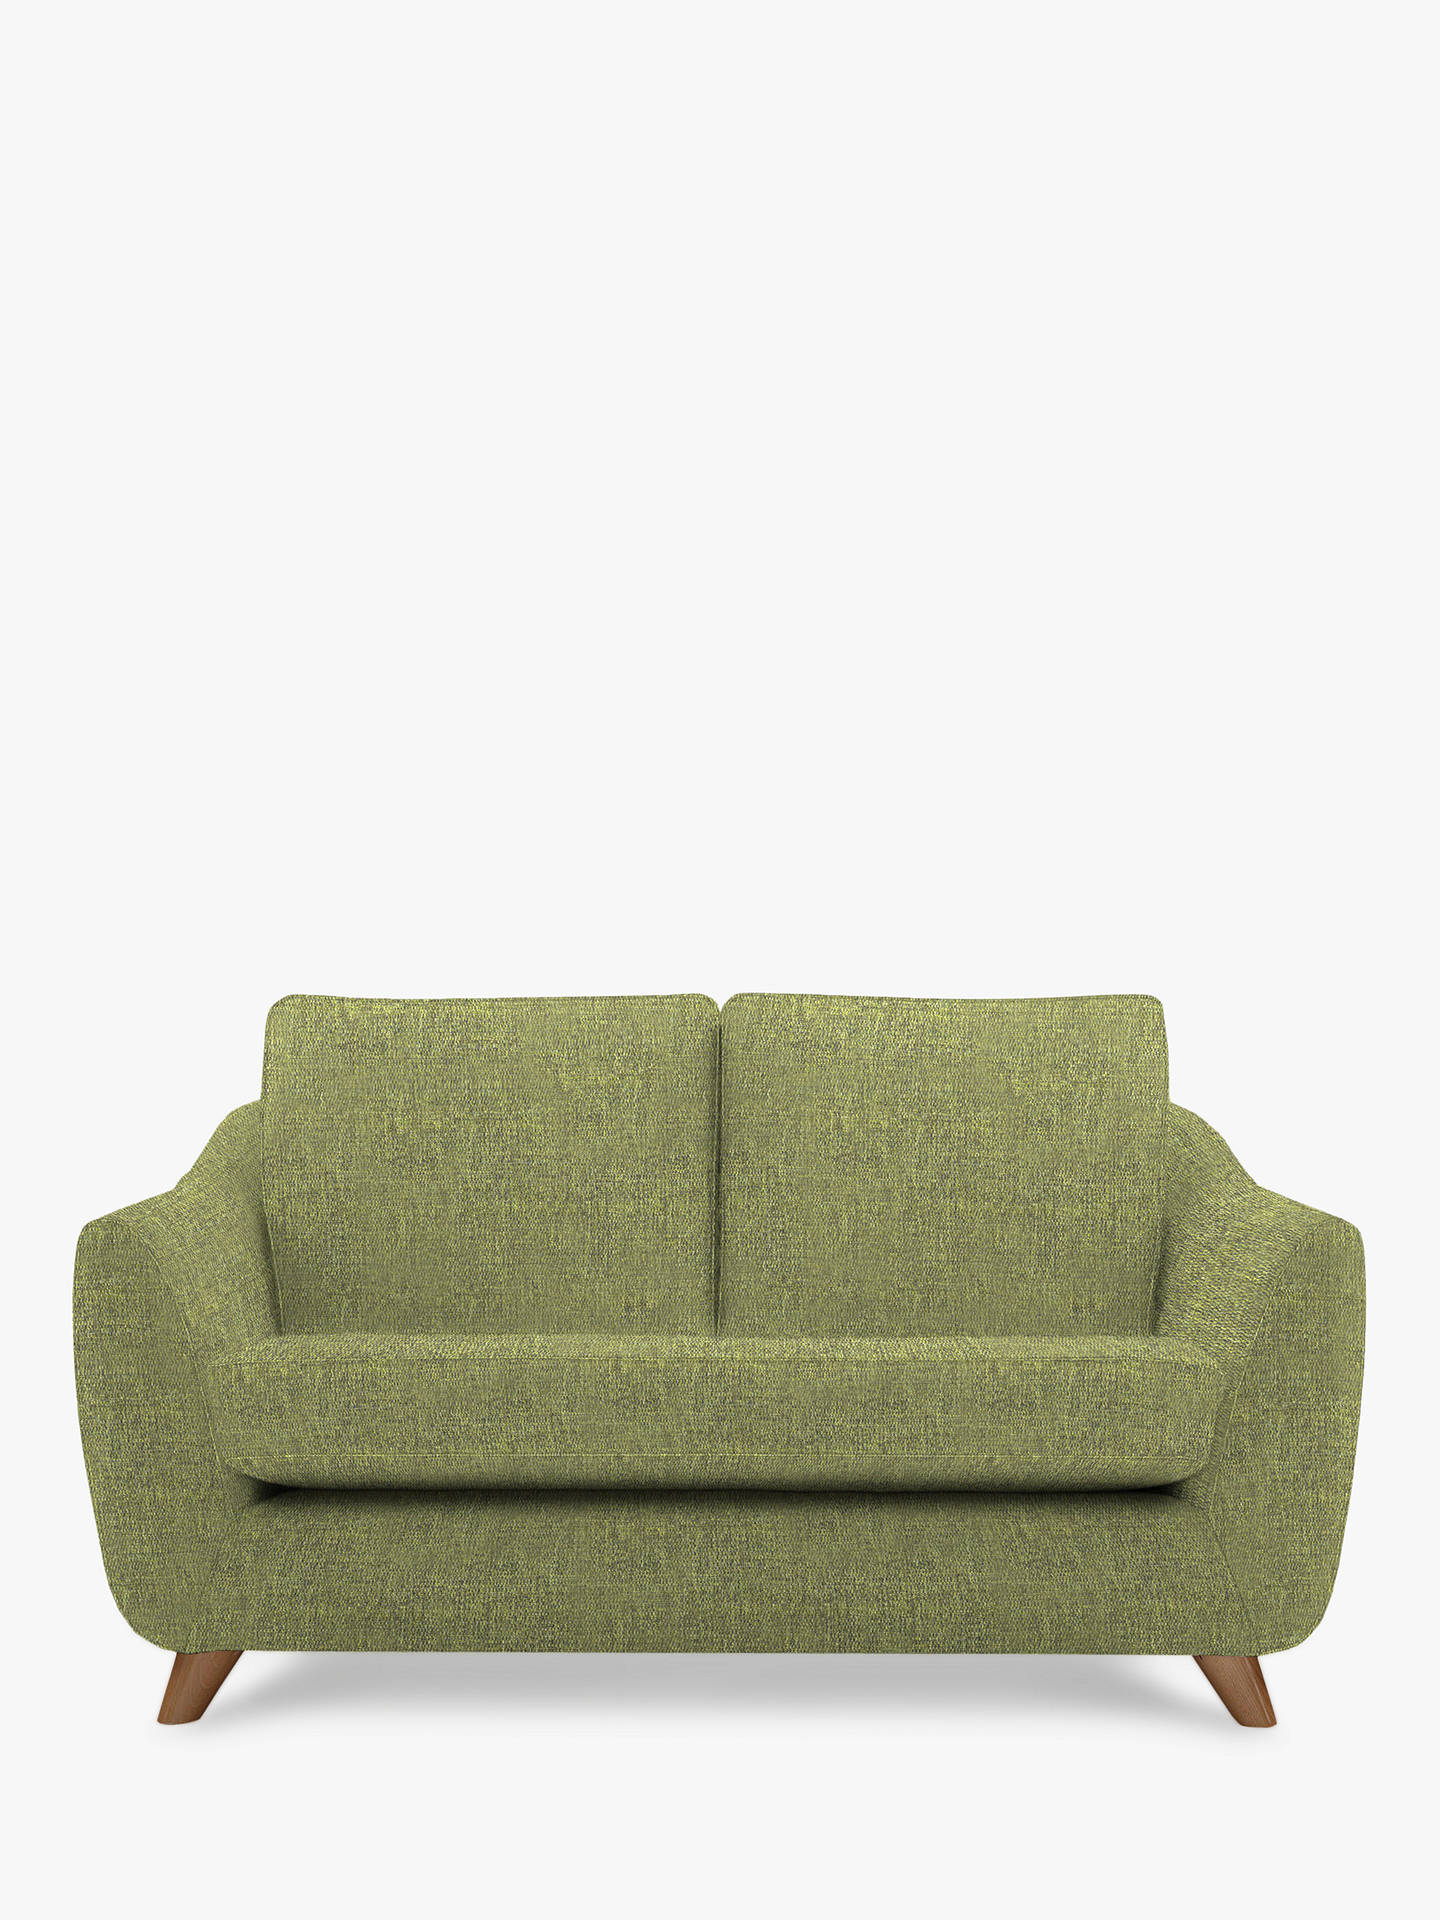 G Plan Vintage The Sixty Seven Small 2 Seater Sofa Marl